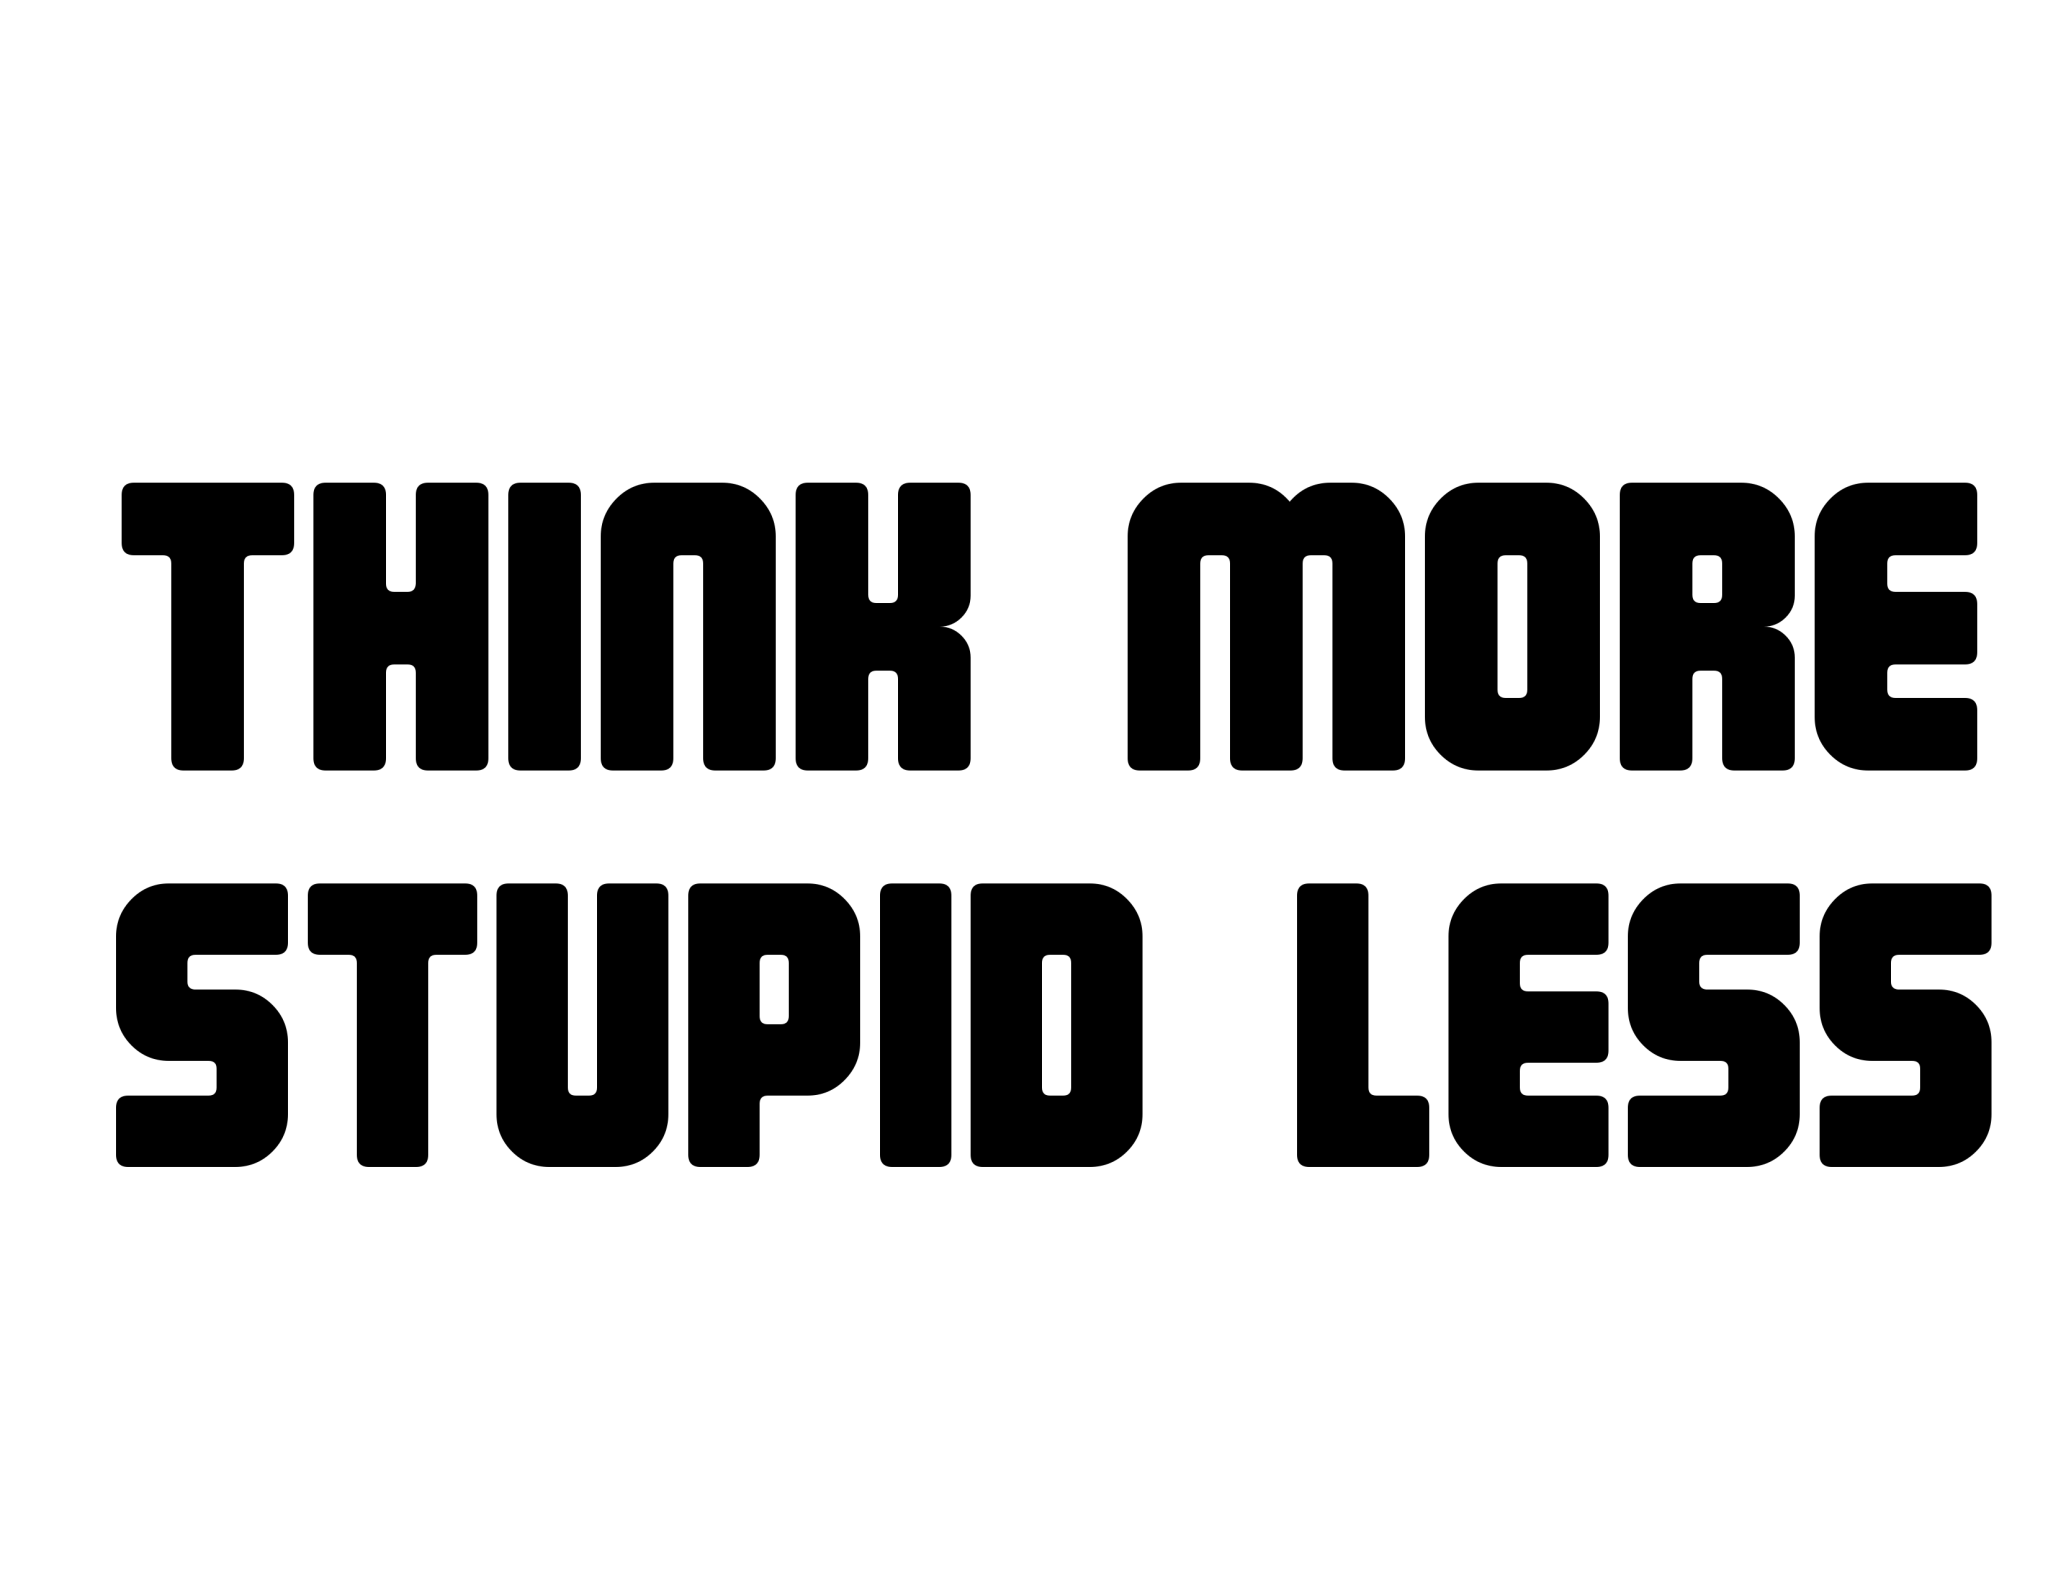 Think More Stupid Less tee design